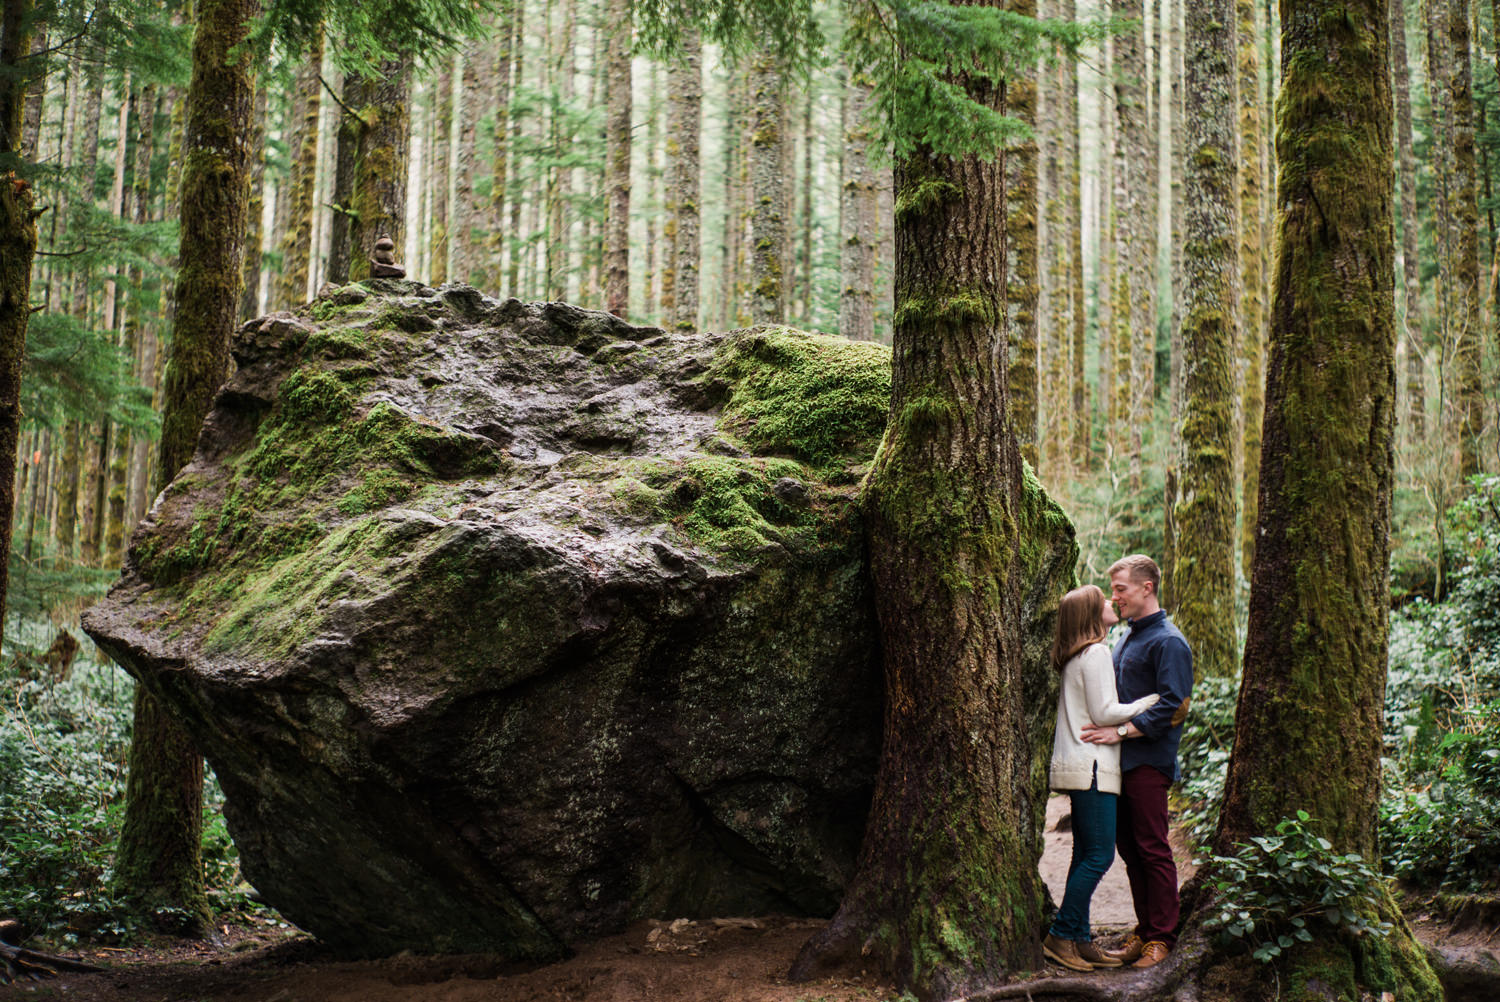 024-snoqualmie-mountain-engagement-session-seattle-film-wedding-photographer-ryan-flynn.jpg